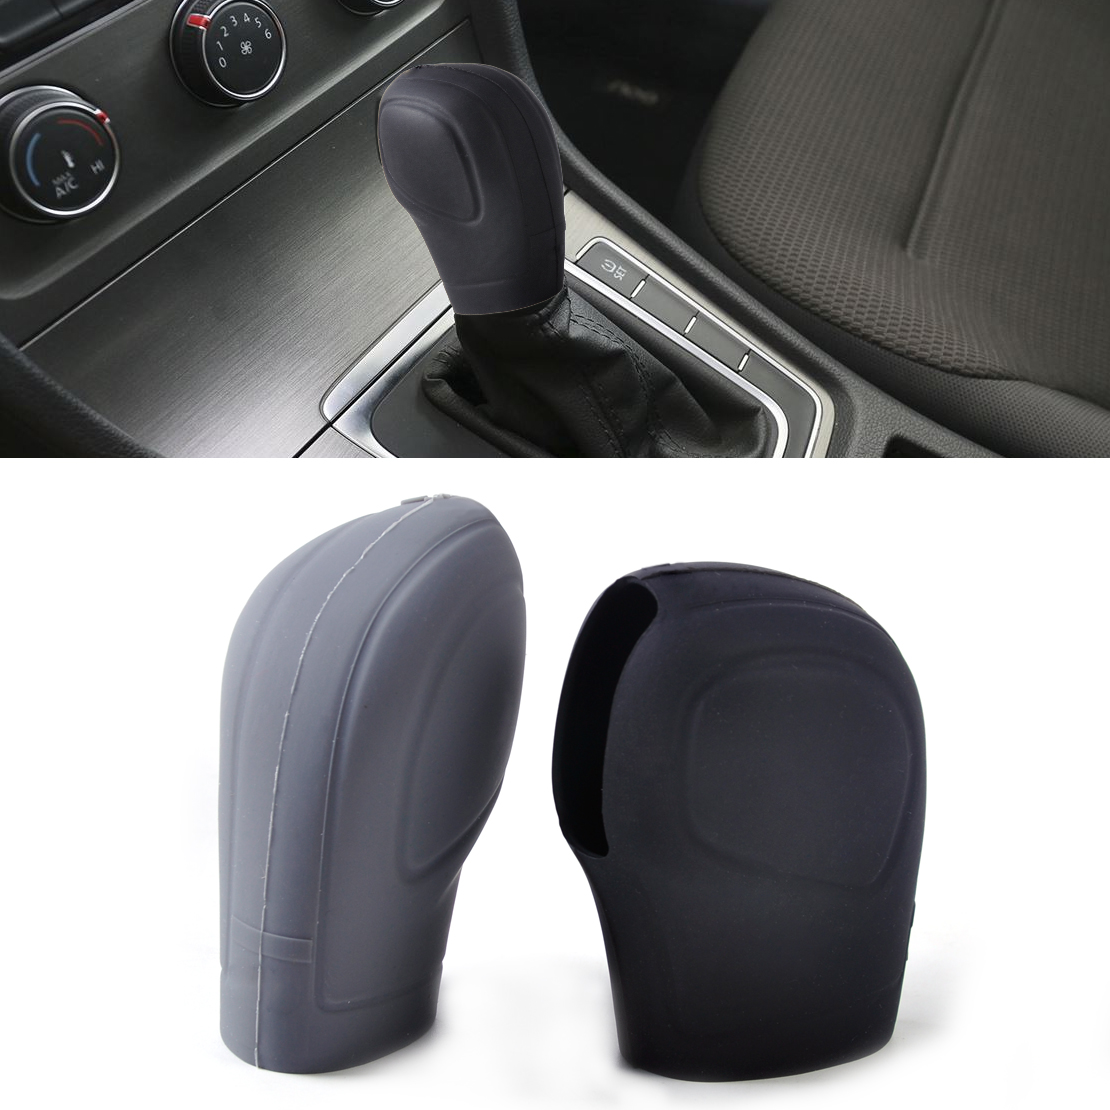 1pc New Car AT Automatic Gear Head Shift Knob Cover Case for Volkswagen VW Golf Beetle Passat Polo Jetta 2011+ Auto Eco Silicone(China (Mainland))